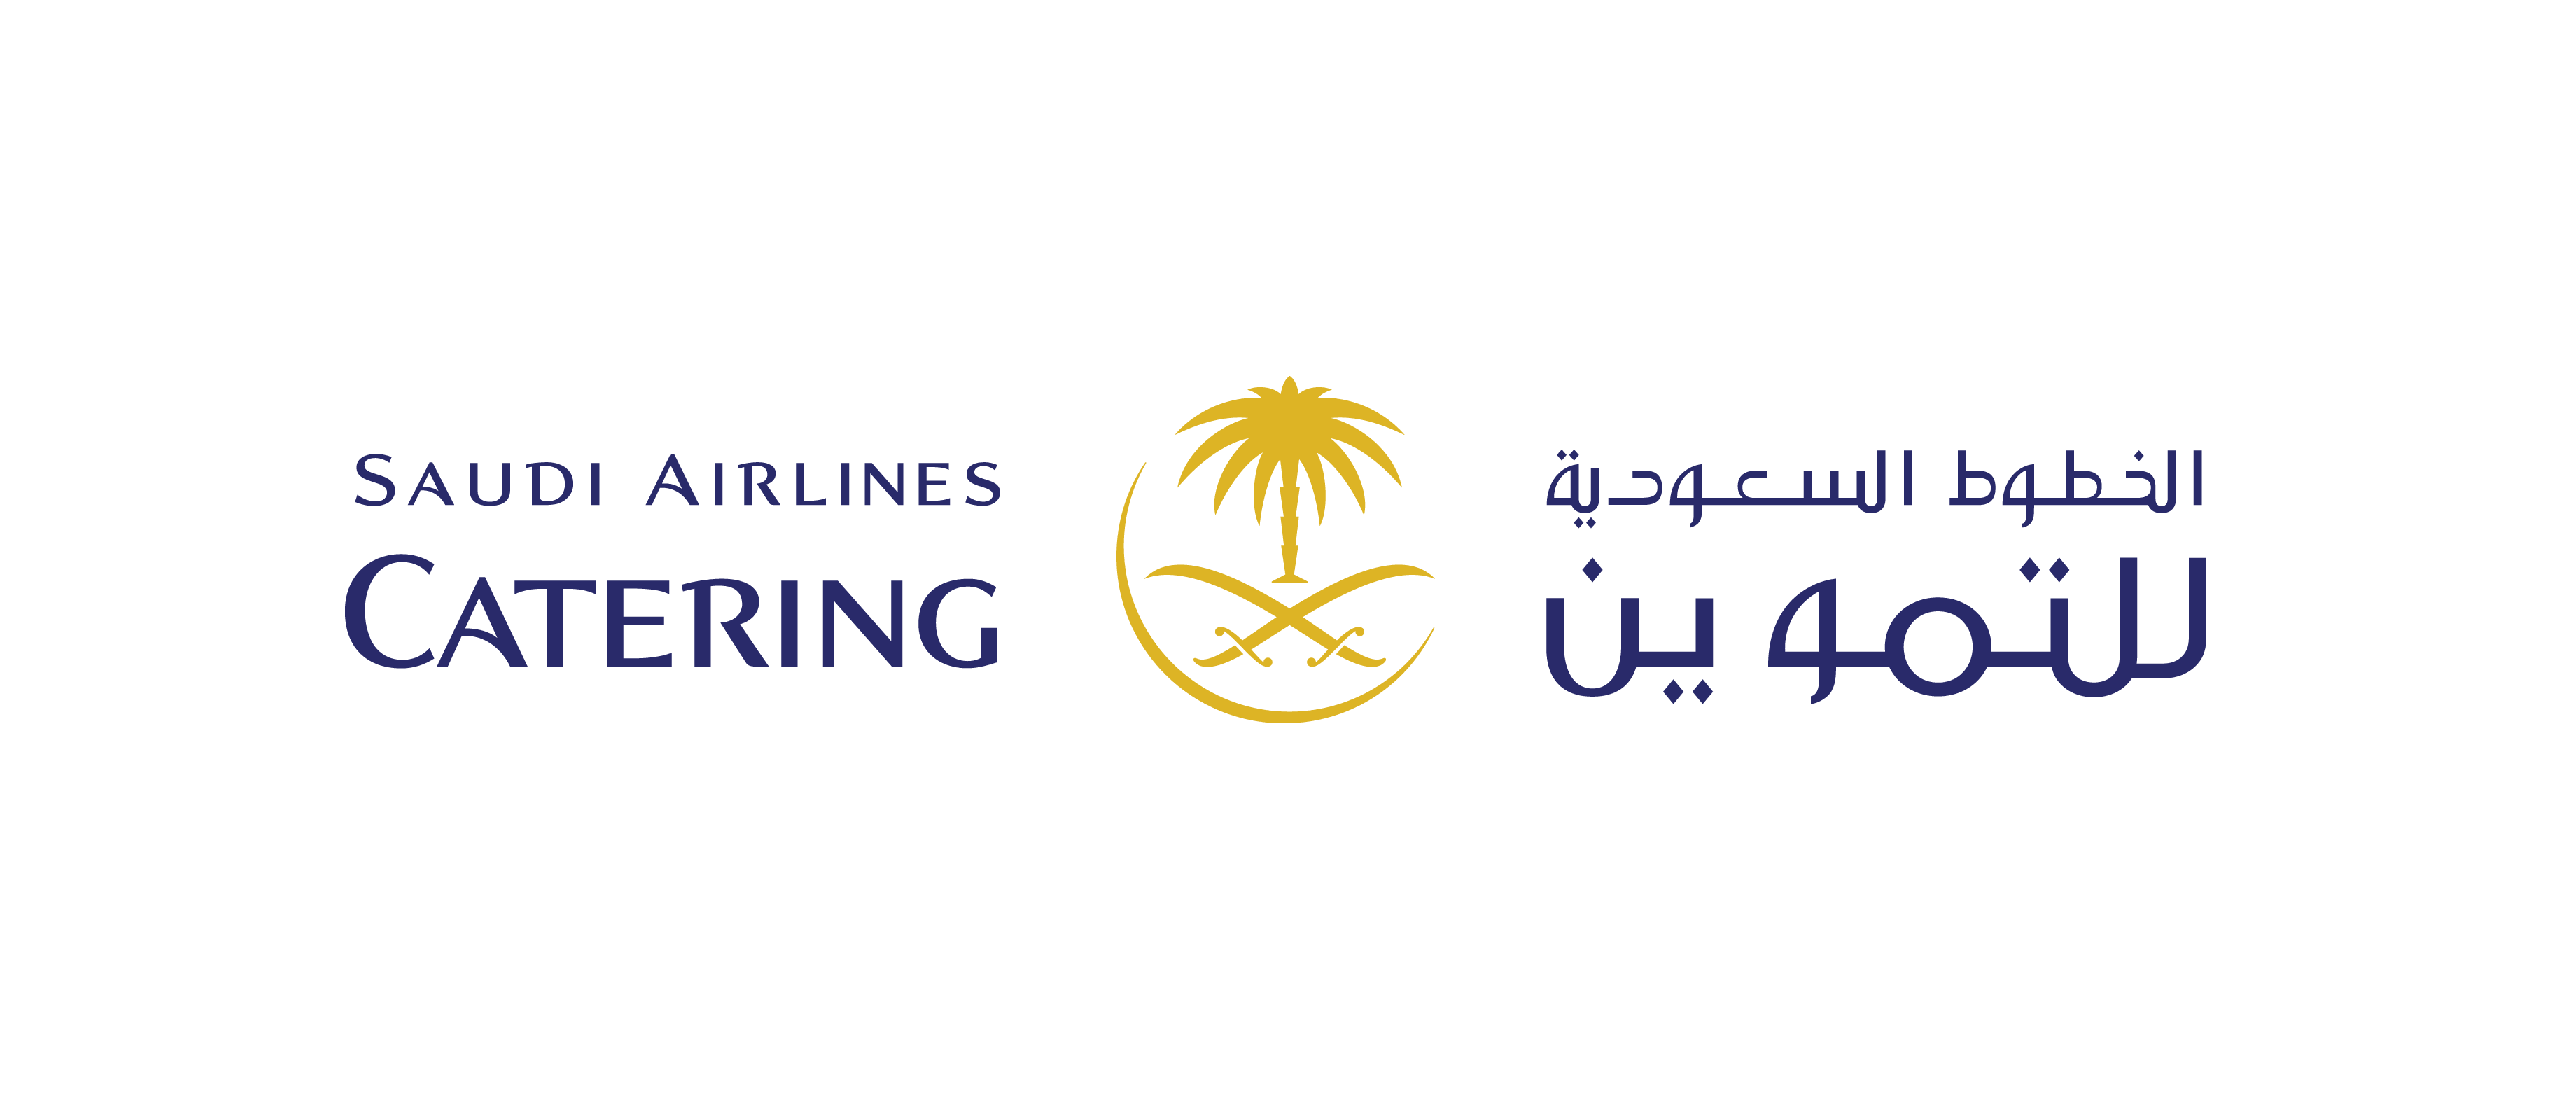 Saudi-Airline-Catering-Small133201615941